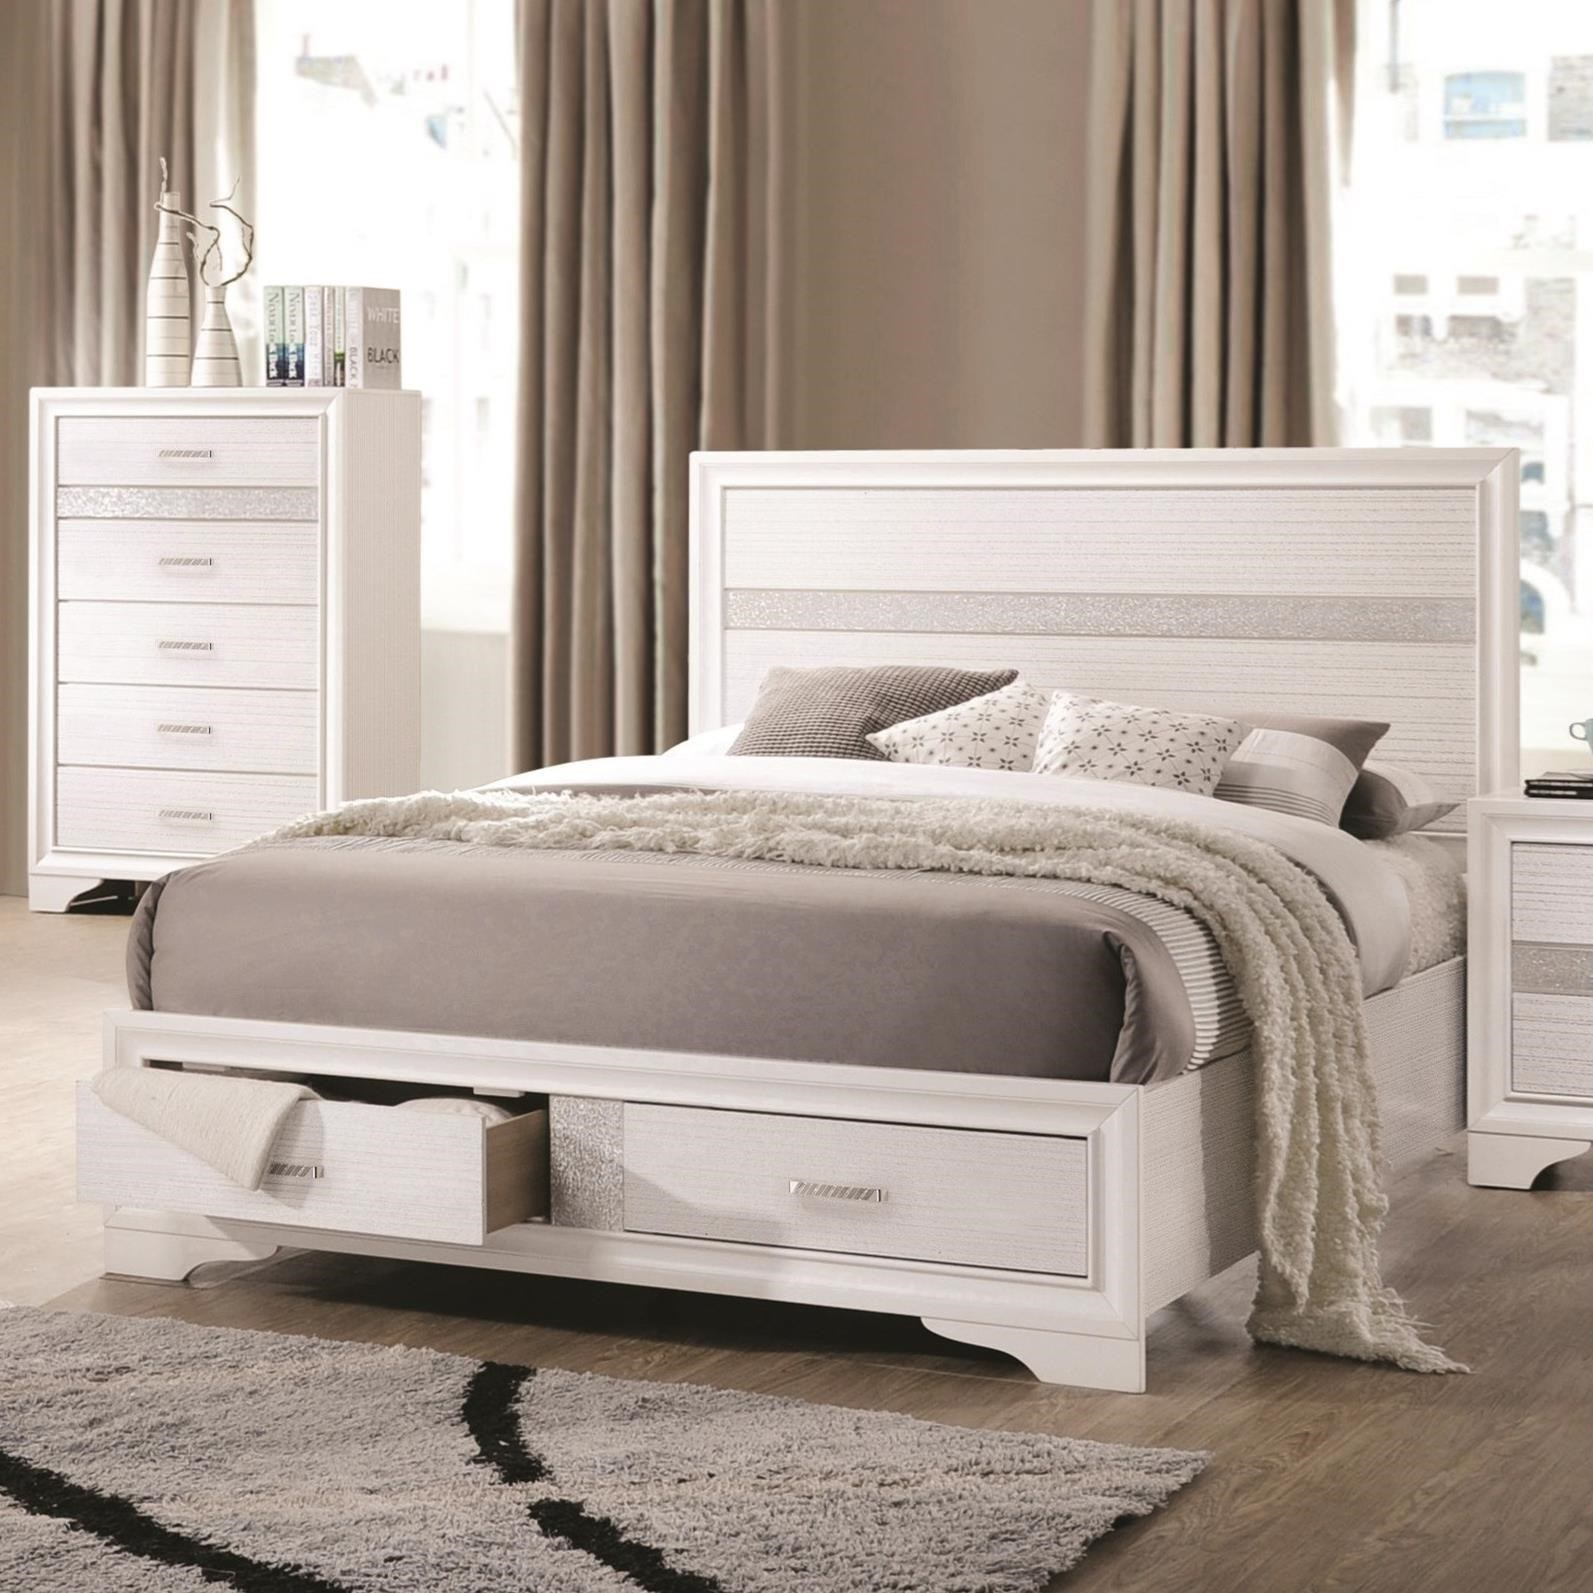 signature king baystorm item with products number storage design bed drawers by ashley